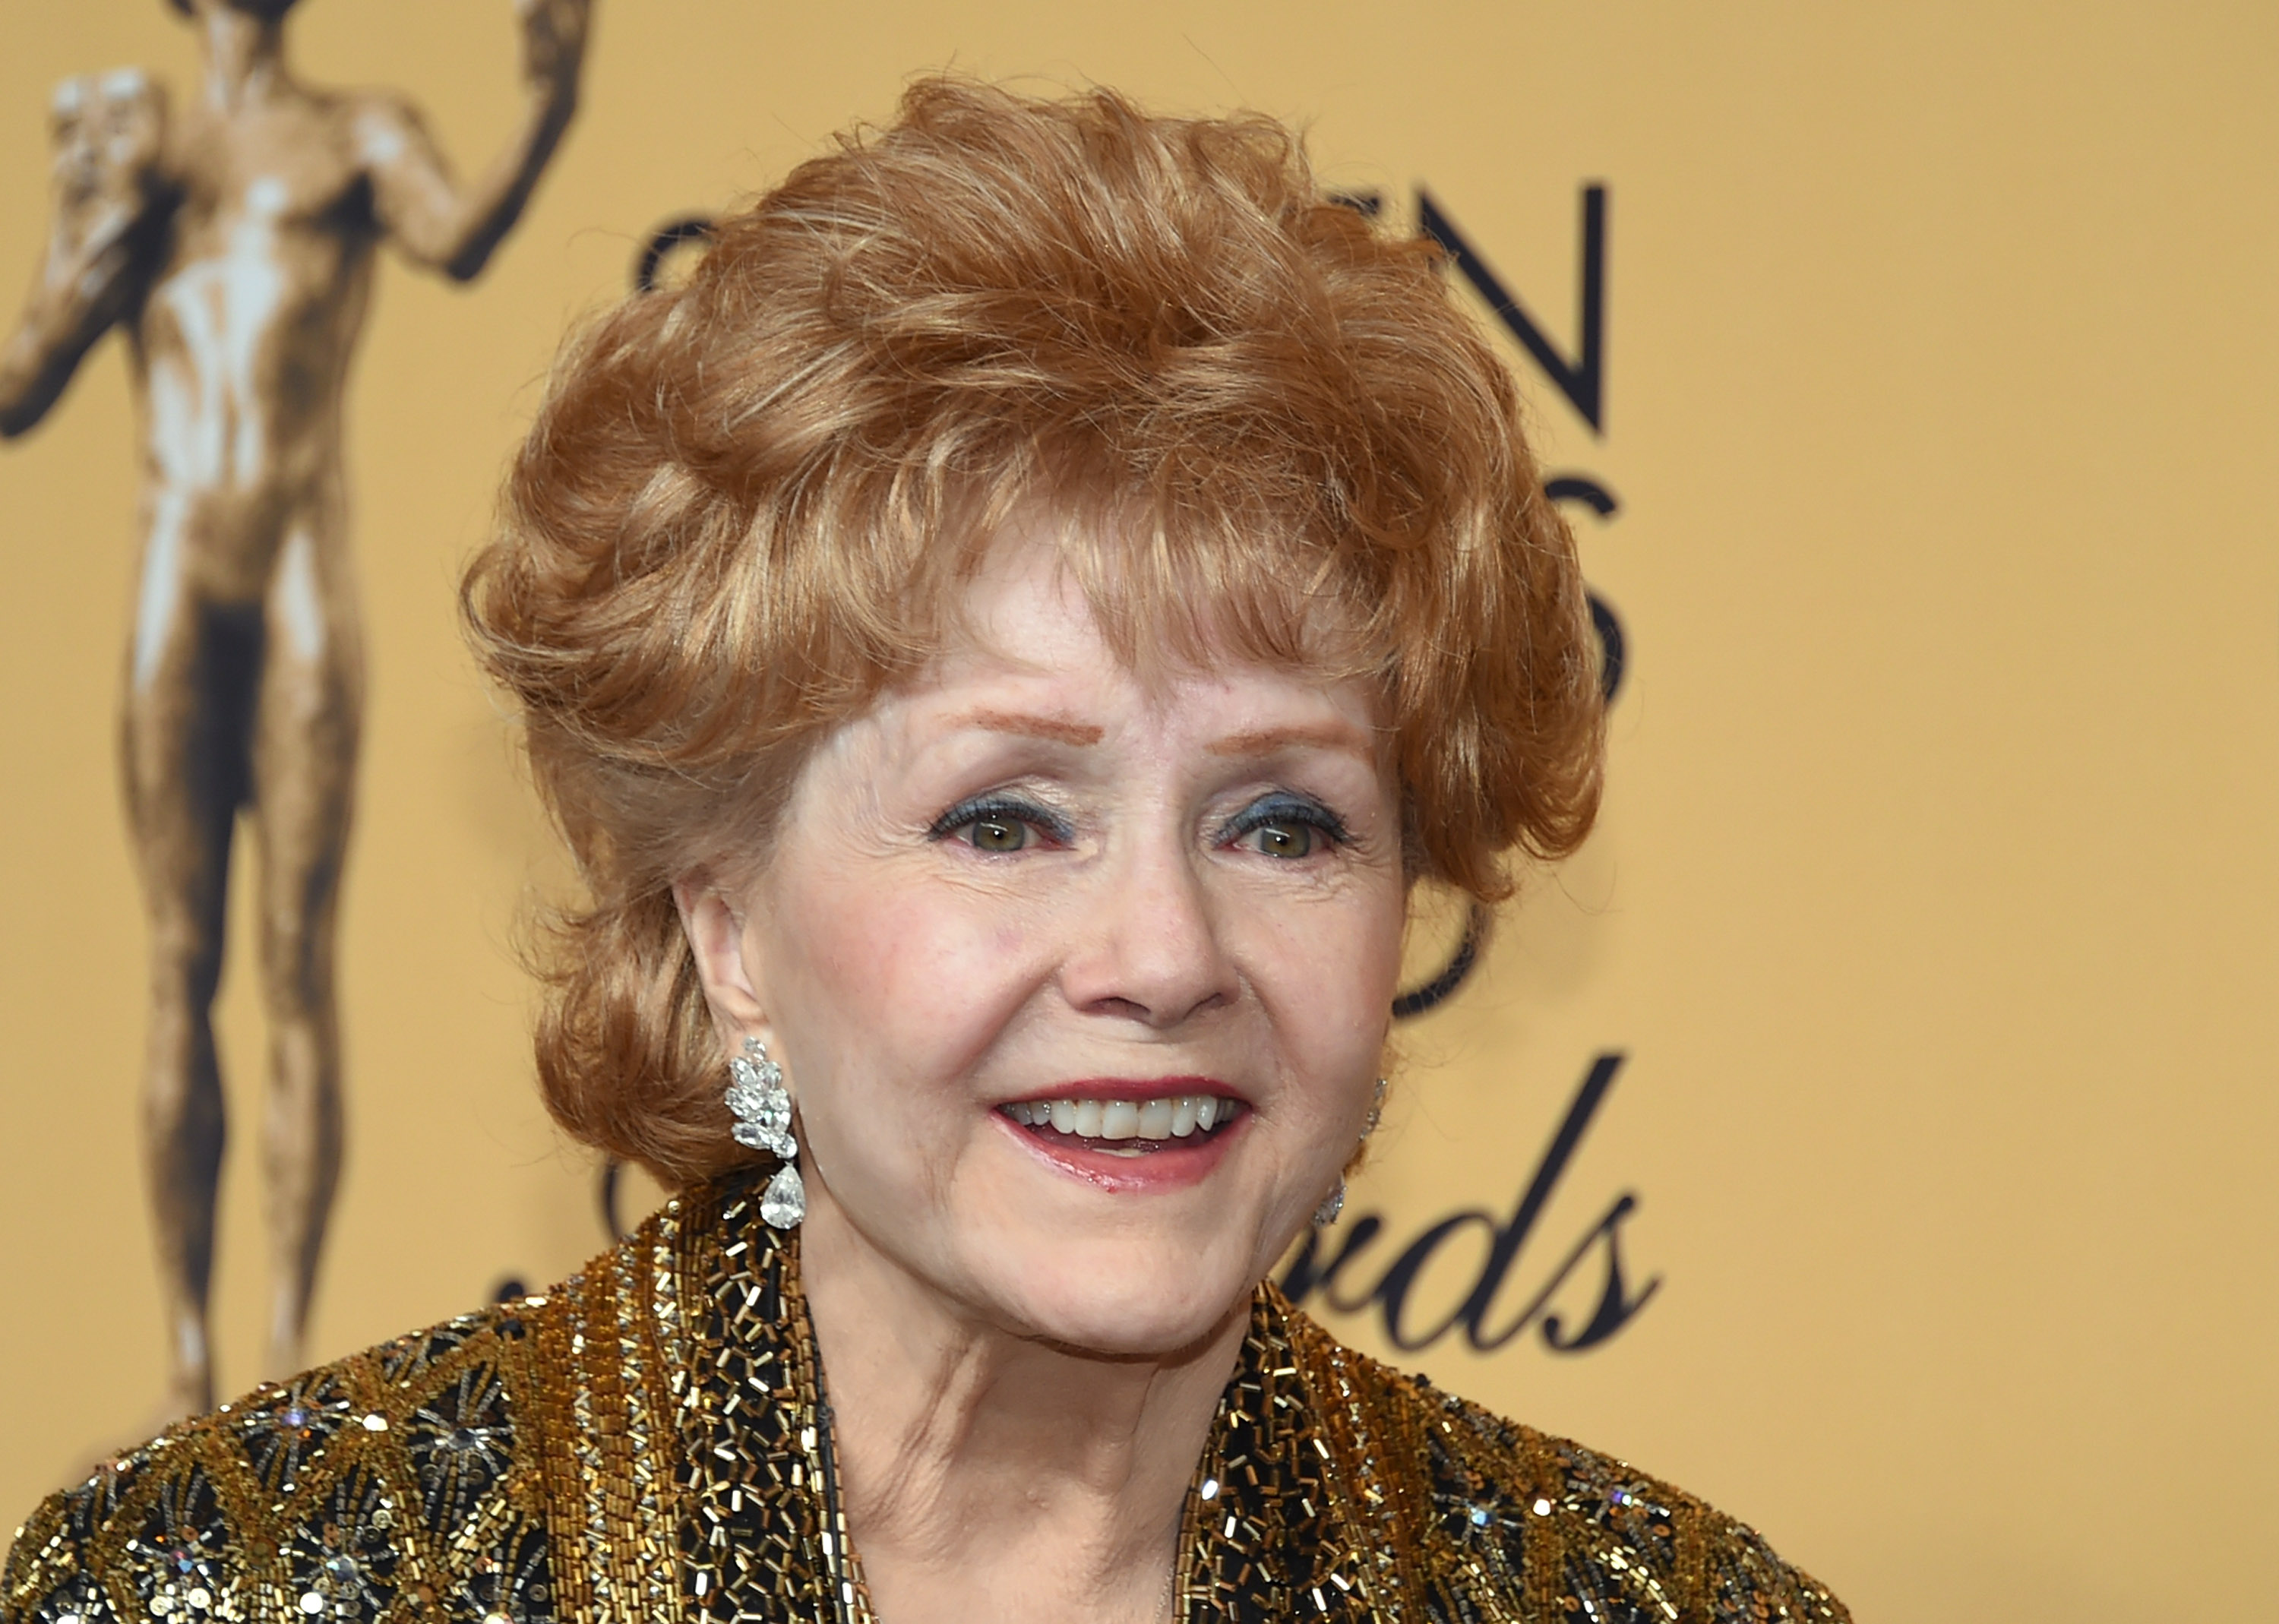 debbie reynolds mother of carrie fisher dies one day after